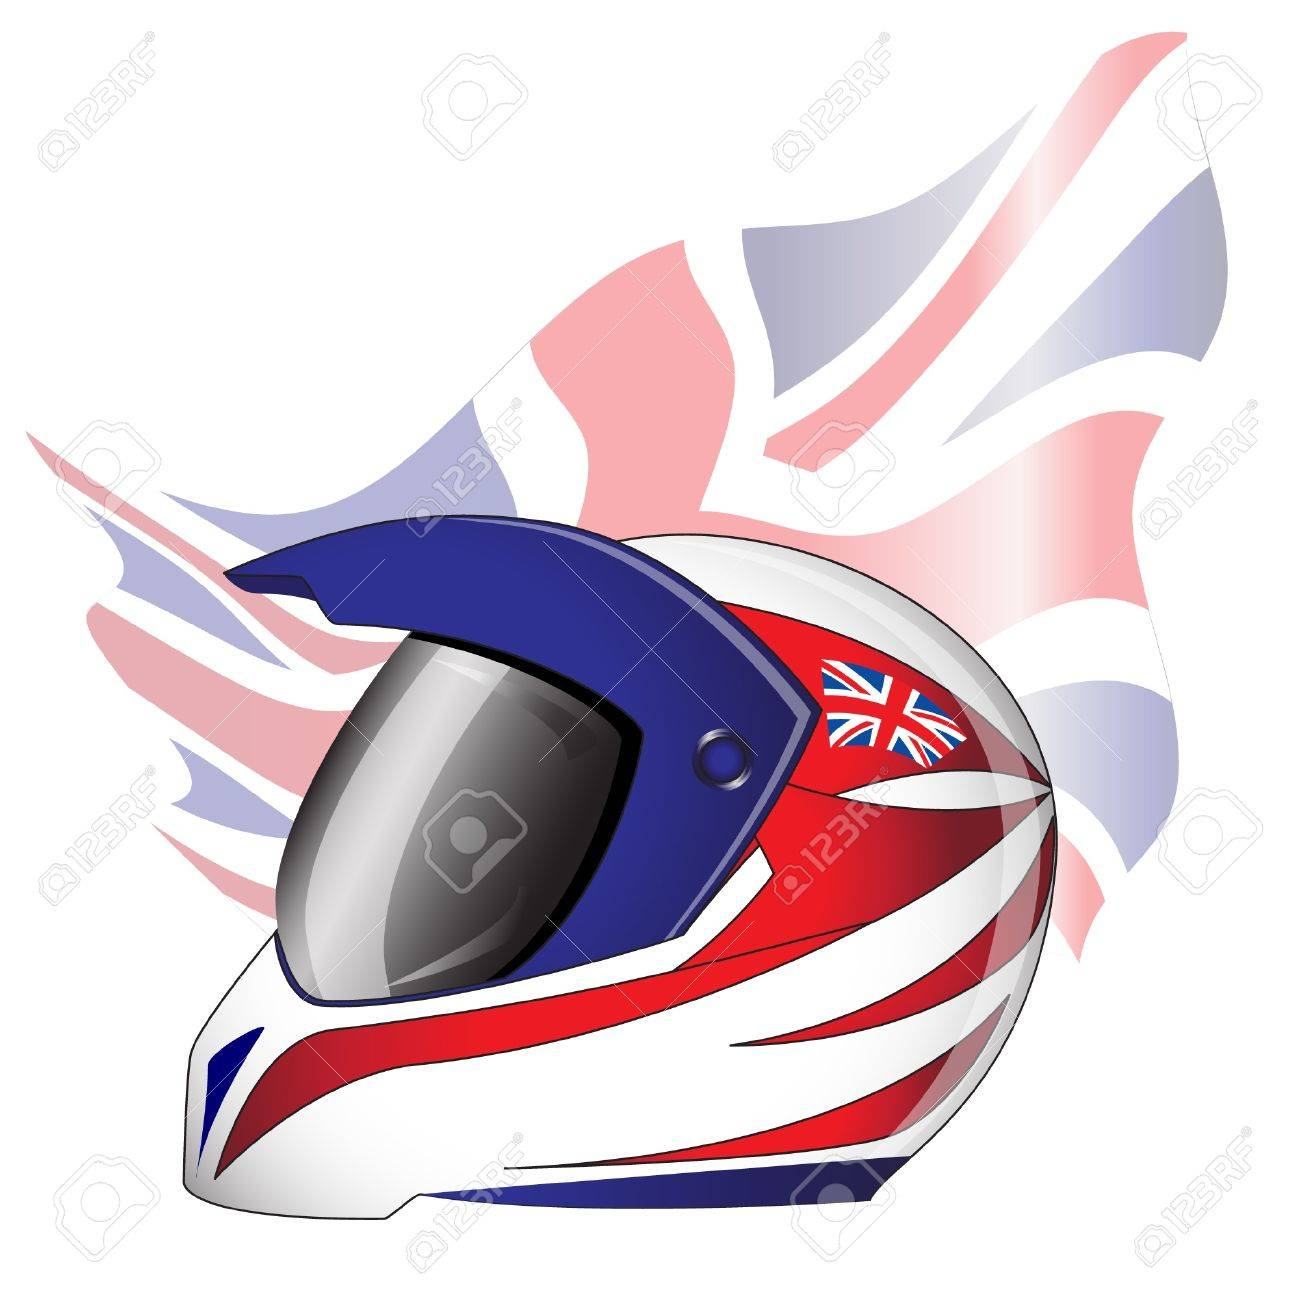 Motorcycle helmet with red, white and blue Union Jack theme British  flag. EPS10 vector format. Stock Vector - 10311402